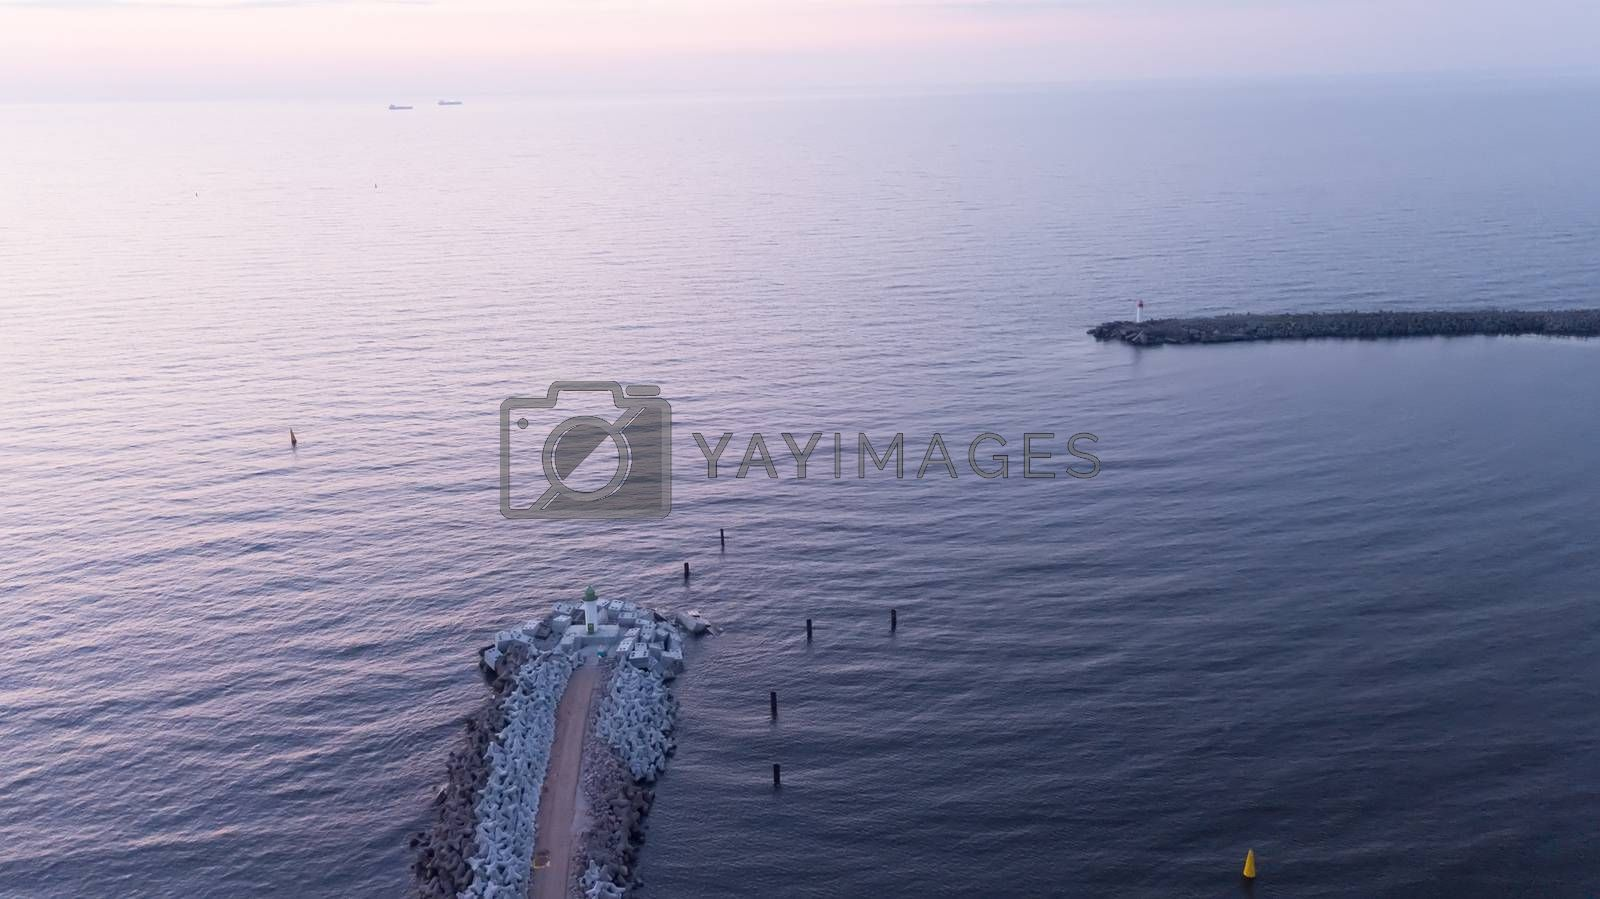 Royalty free image of Harbor Ventspils Latvia Aerial view of countryside drone top view by desant7474